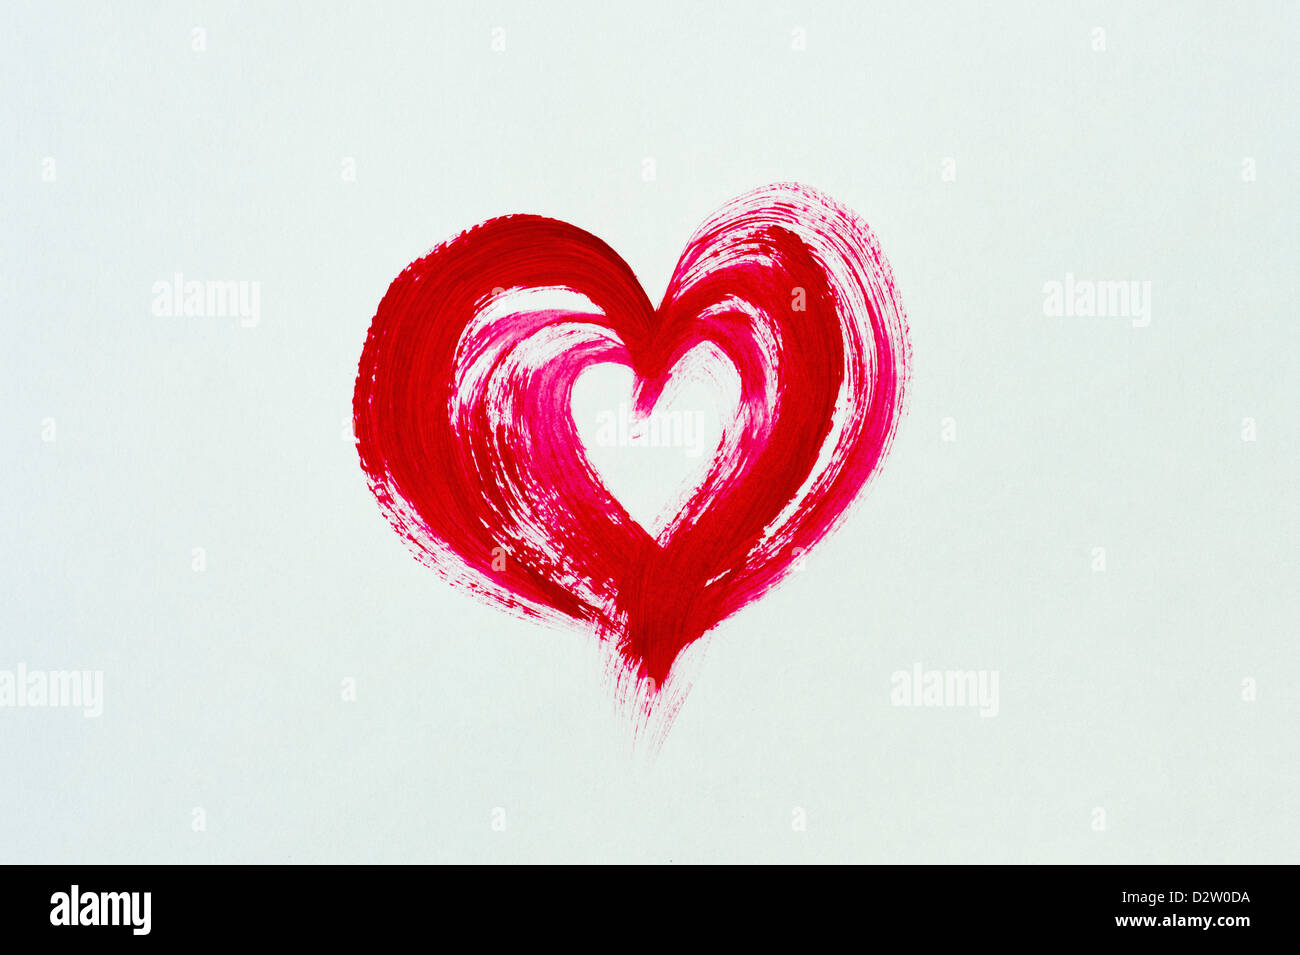 Painted red love heart on white background - Stock Image